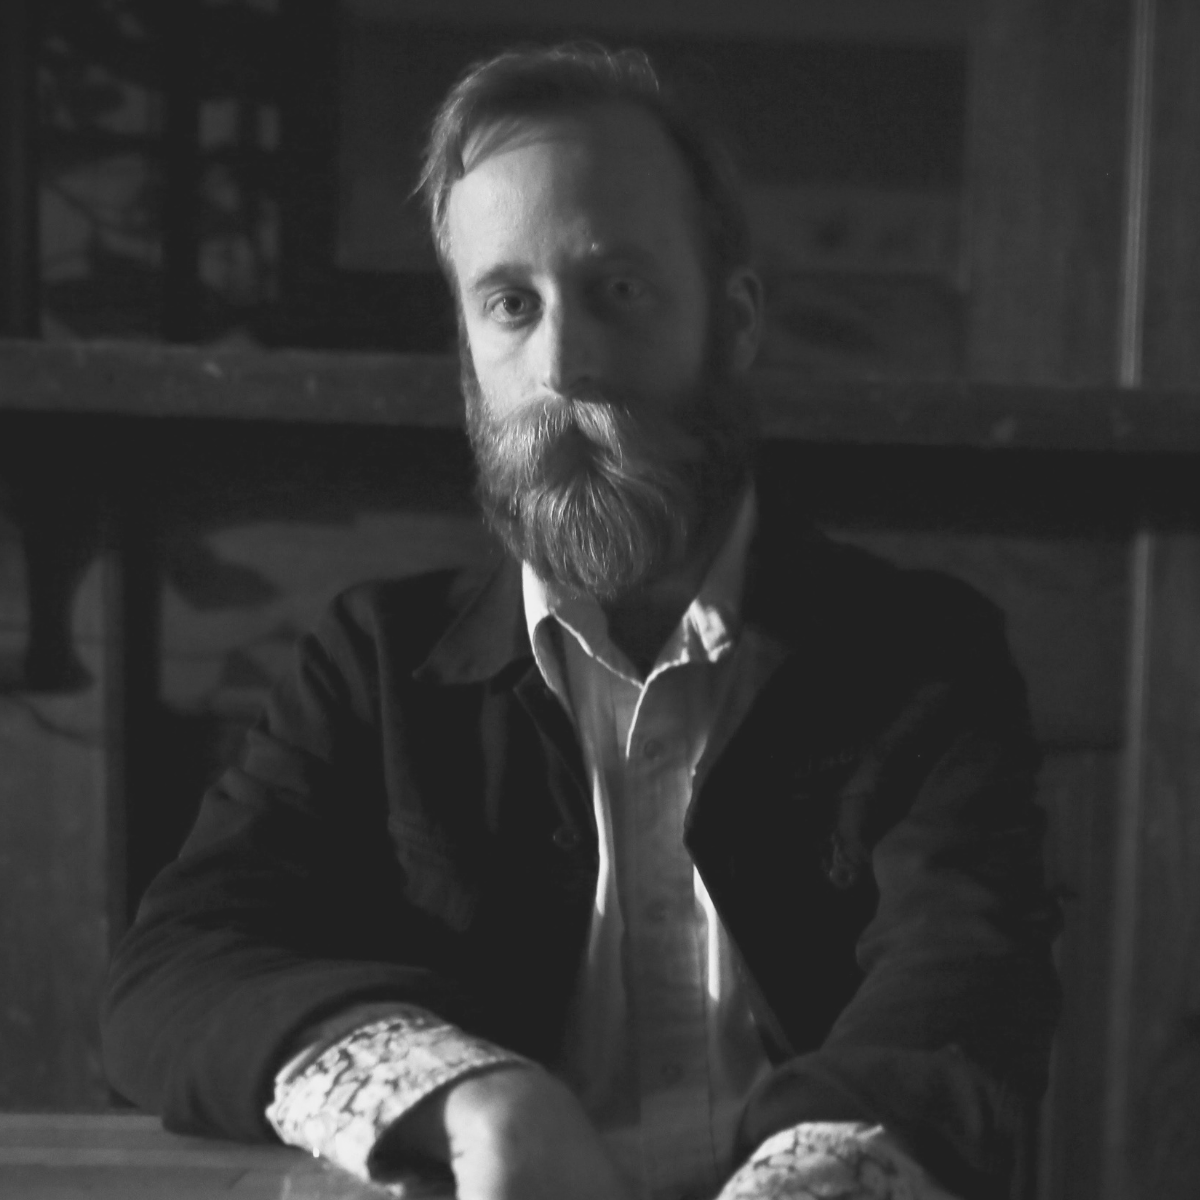 Performance   Jack Grelle - Jack Grelle is an idealistic songwriter from St. Louis, Missouri. Combining the styles of folk, traditional country, honky tonk, and rock and roll, Grelle is able to capture the themes and tones of our country's past and present struggles and triumphs.